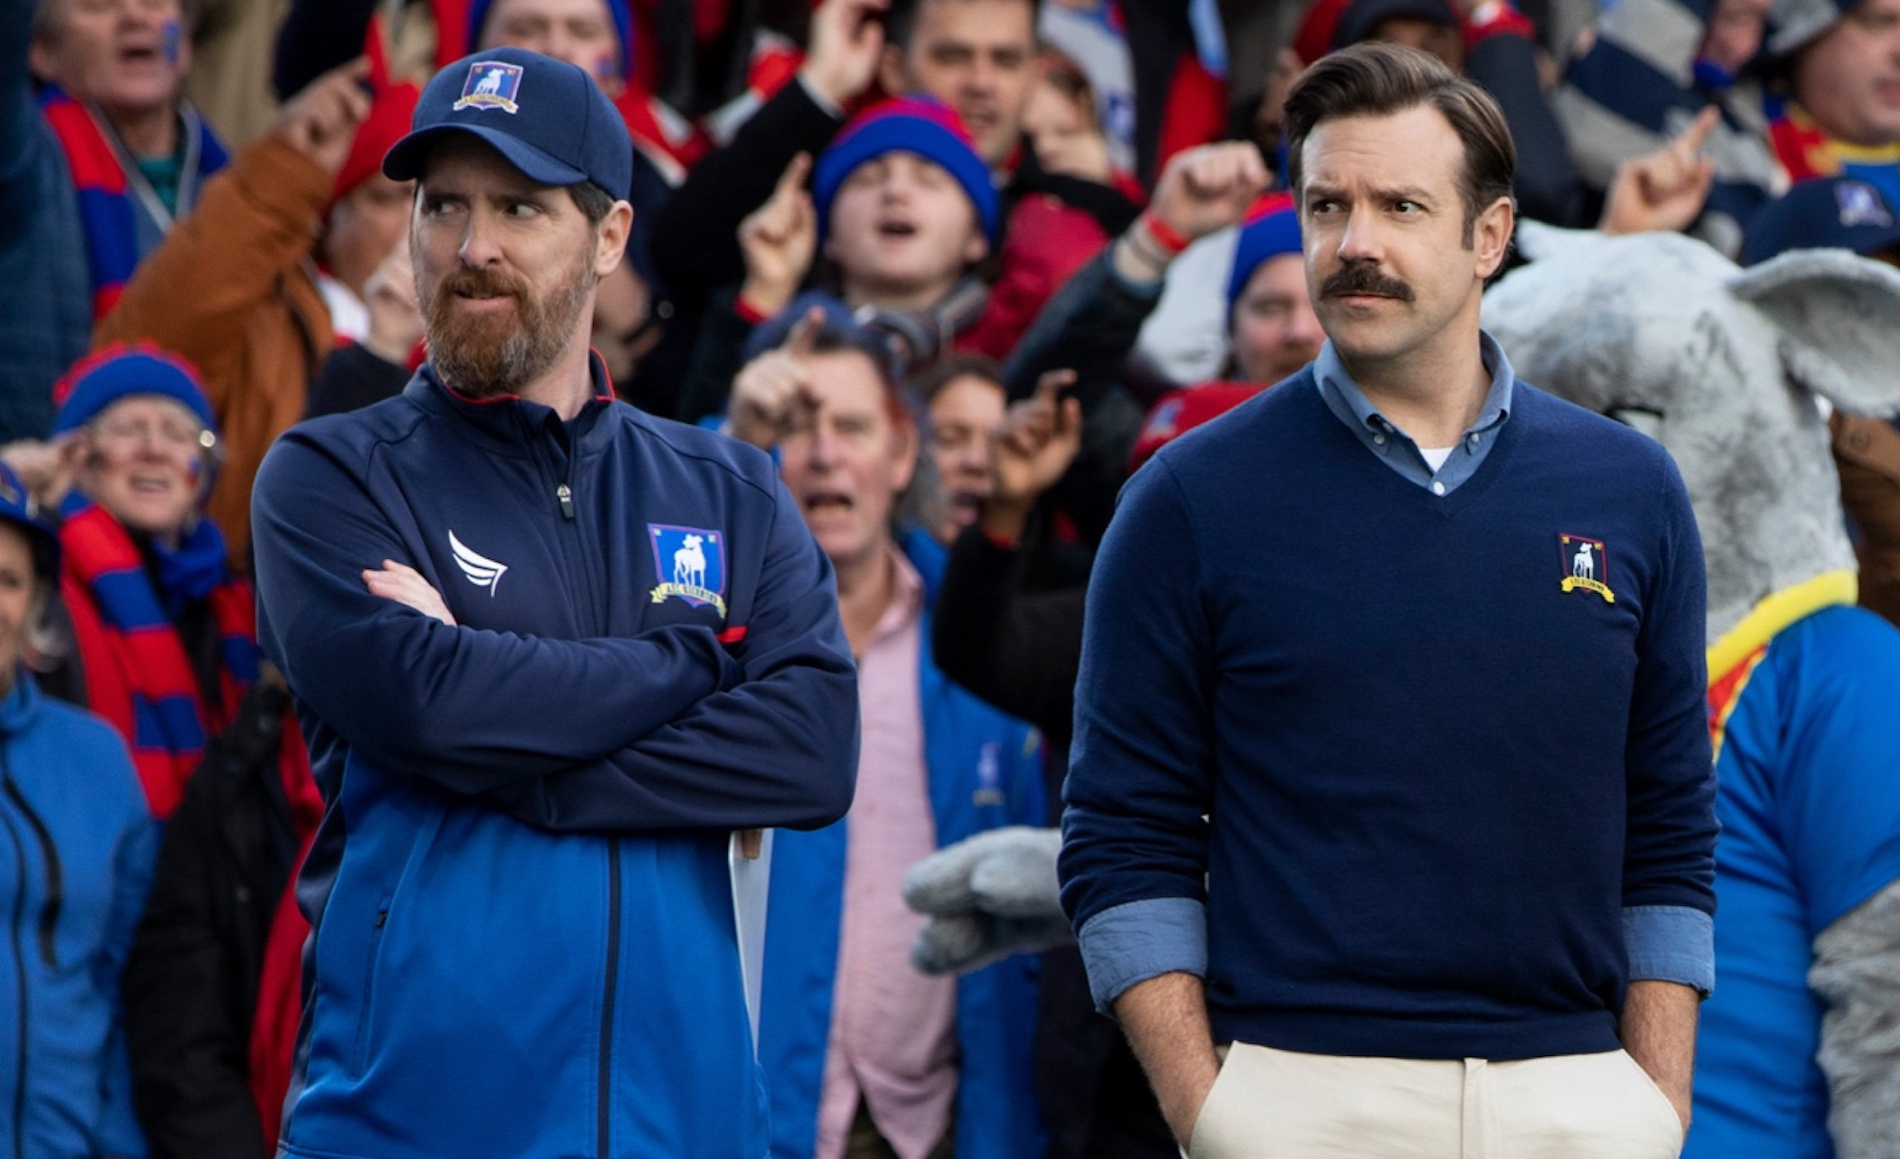 Jason Sudeikis + Brendan Hunt Talk 'Ted Lasso' and Their Best Comedy Writing Tips